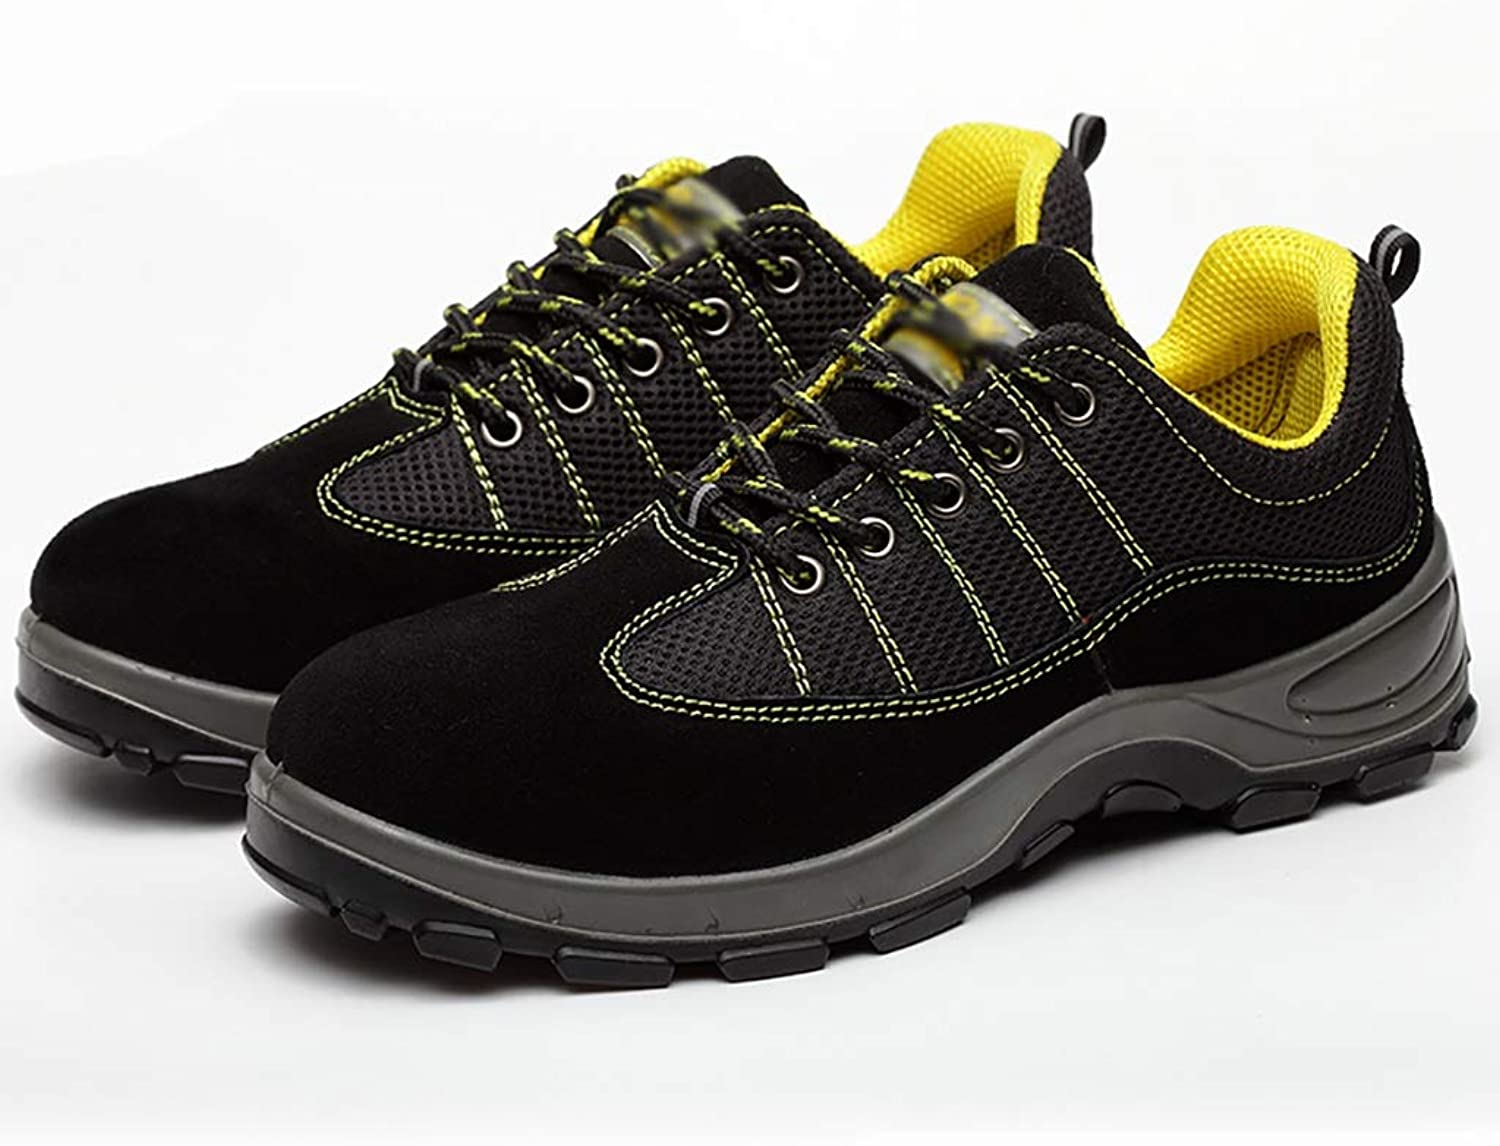 Gym wear for men Men's Casual shoes - Lightweight Hiking shoes Breathable with All Seasons shoes, Non-slip Outsole - Hiking and Hiking on cloud running shoes (color   Yellow, Size   41)